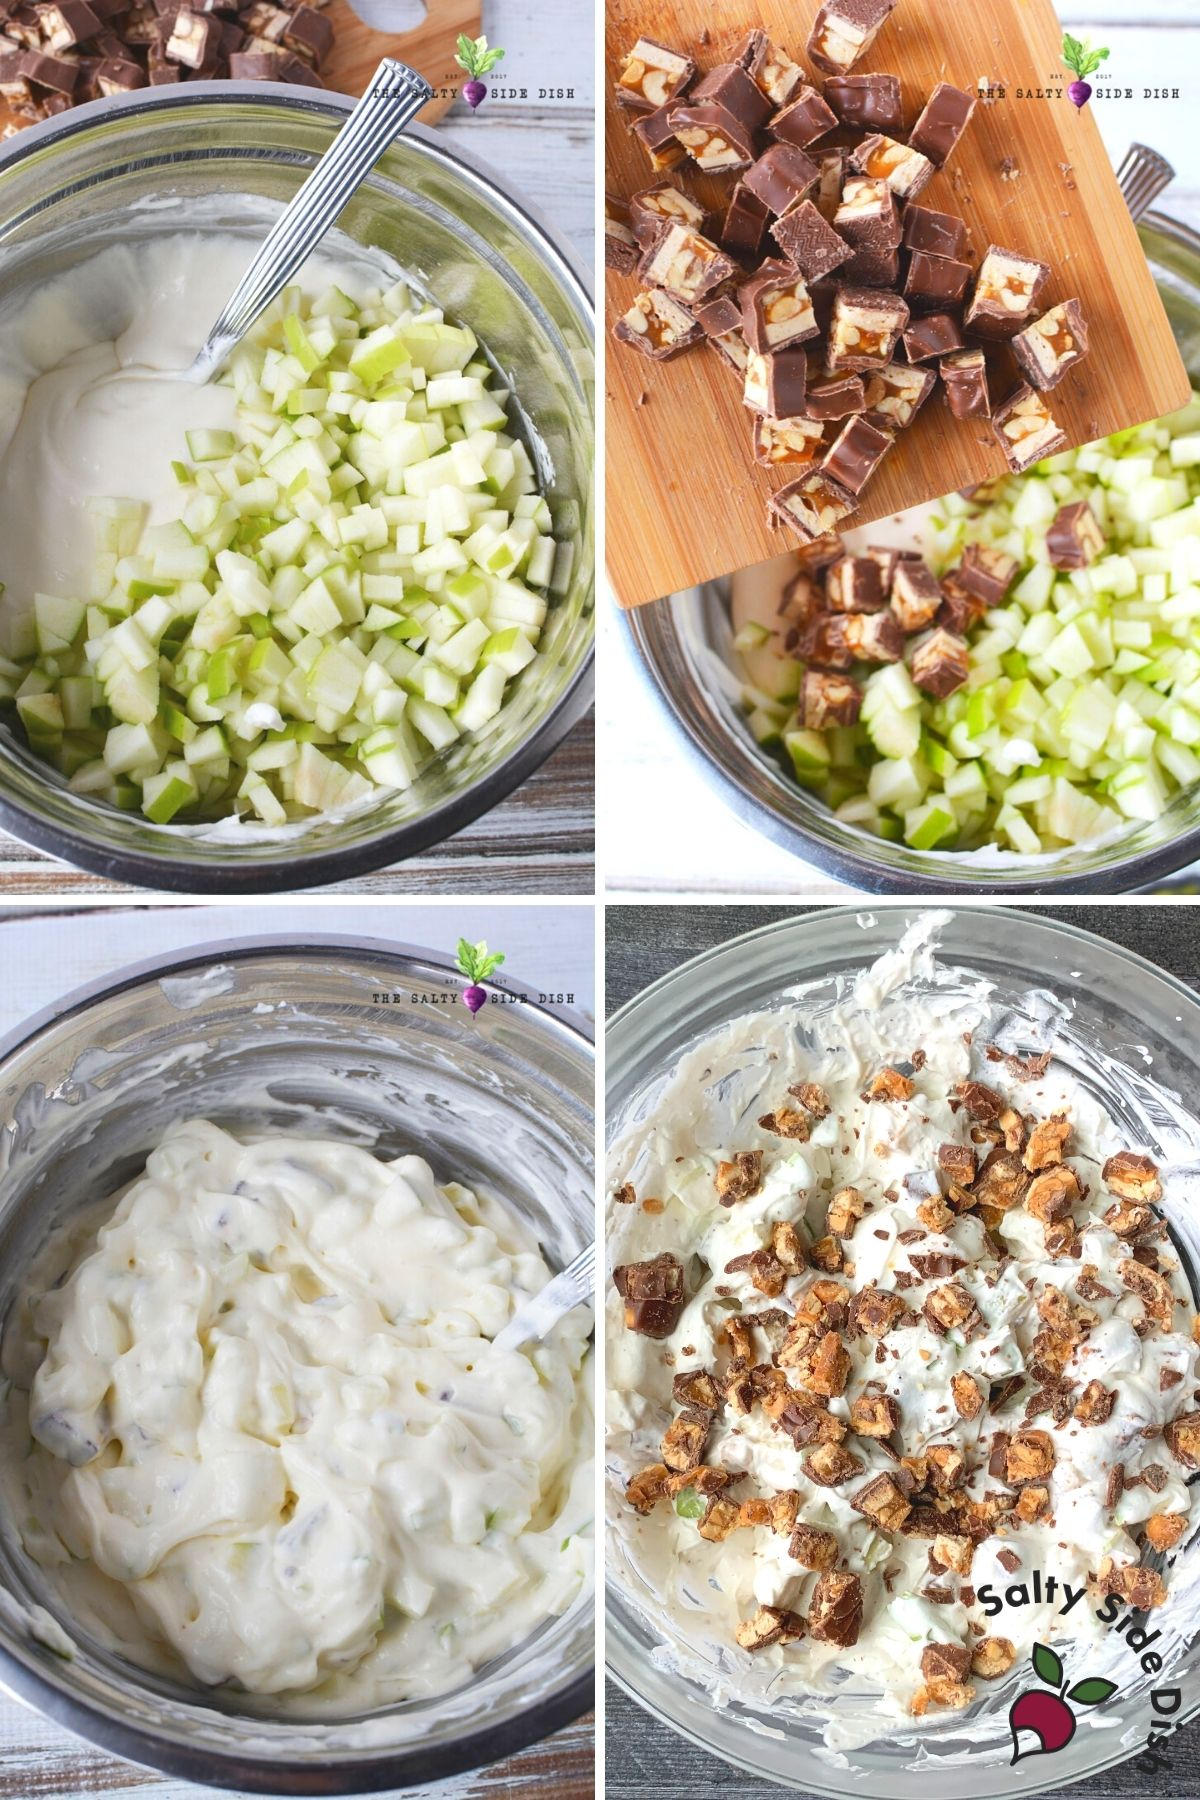 adding Snickers candy bar and apples to pudding